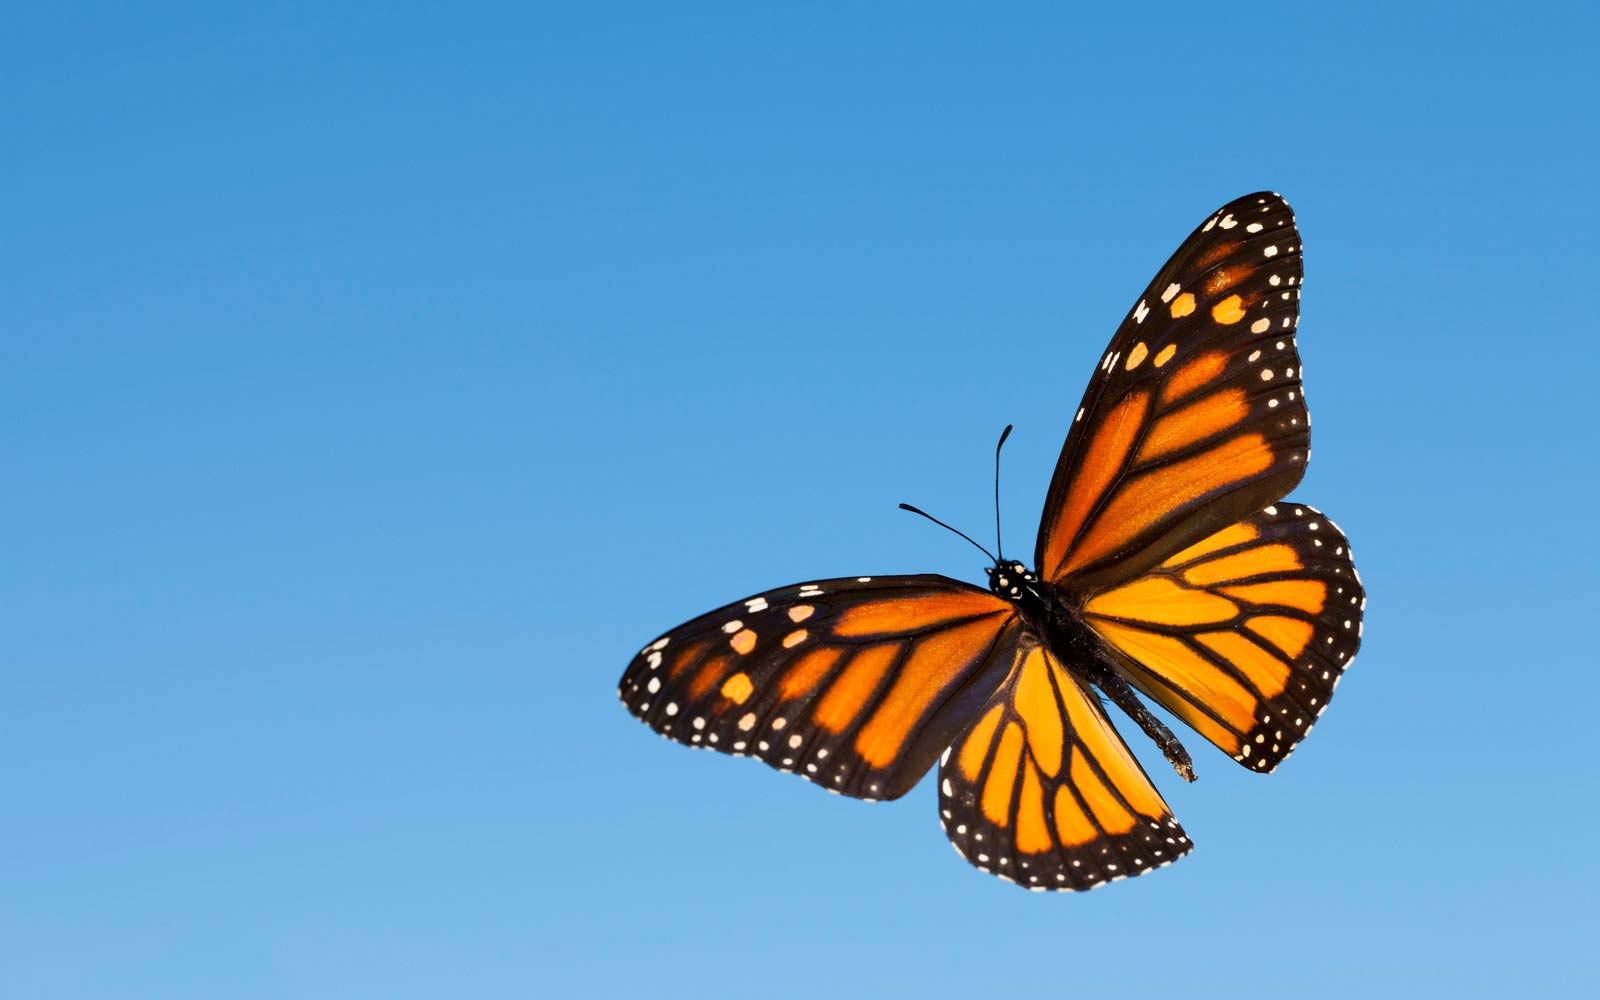 Texas Is Expecting 300 Million Monarch Butterflies After Major Wildflower Bloom